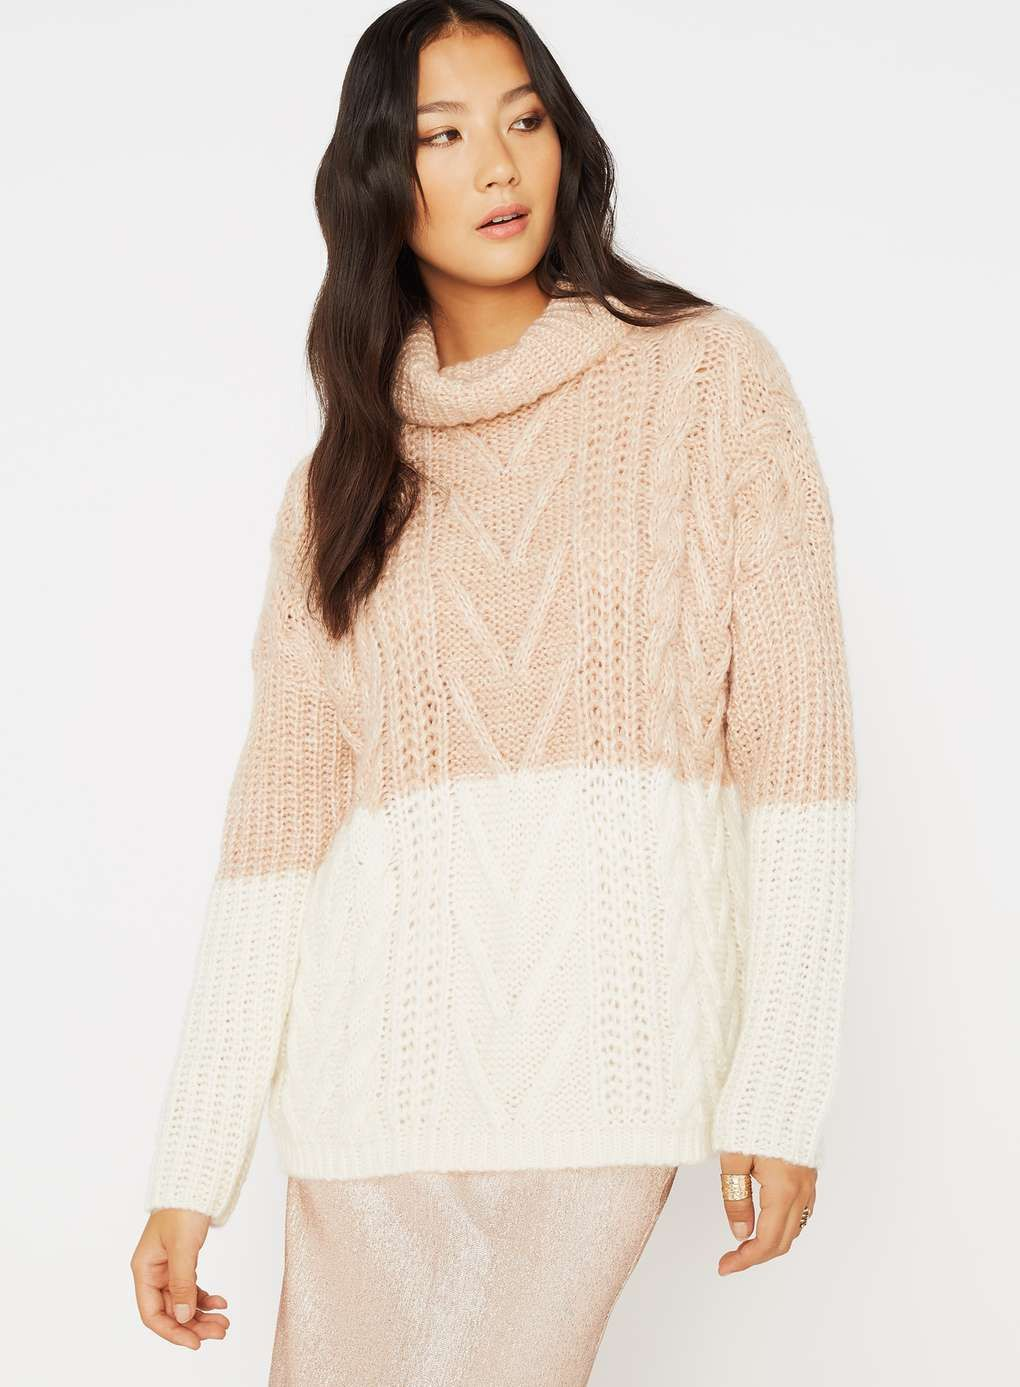 Pink And Cream Cable Chunky Knitted Jumper | Sweaters | Pinterest ...